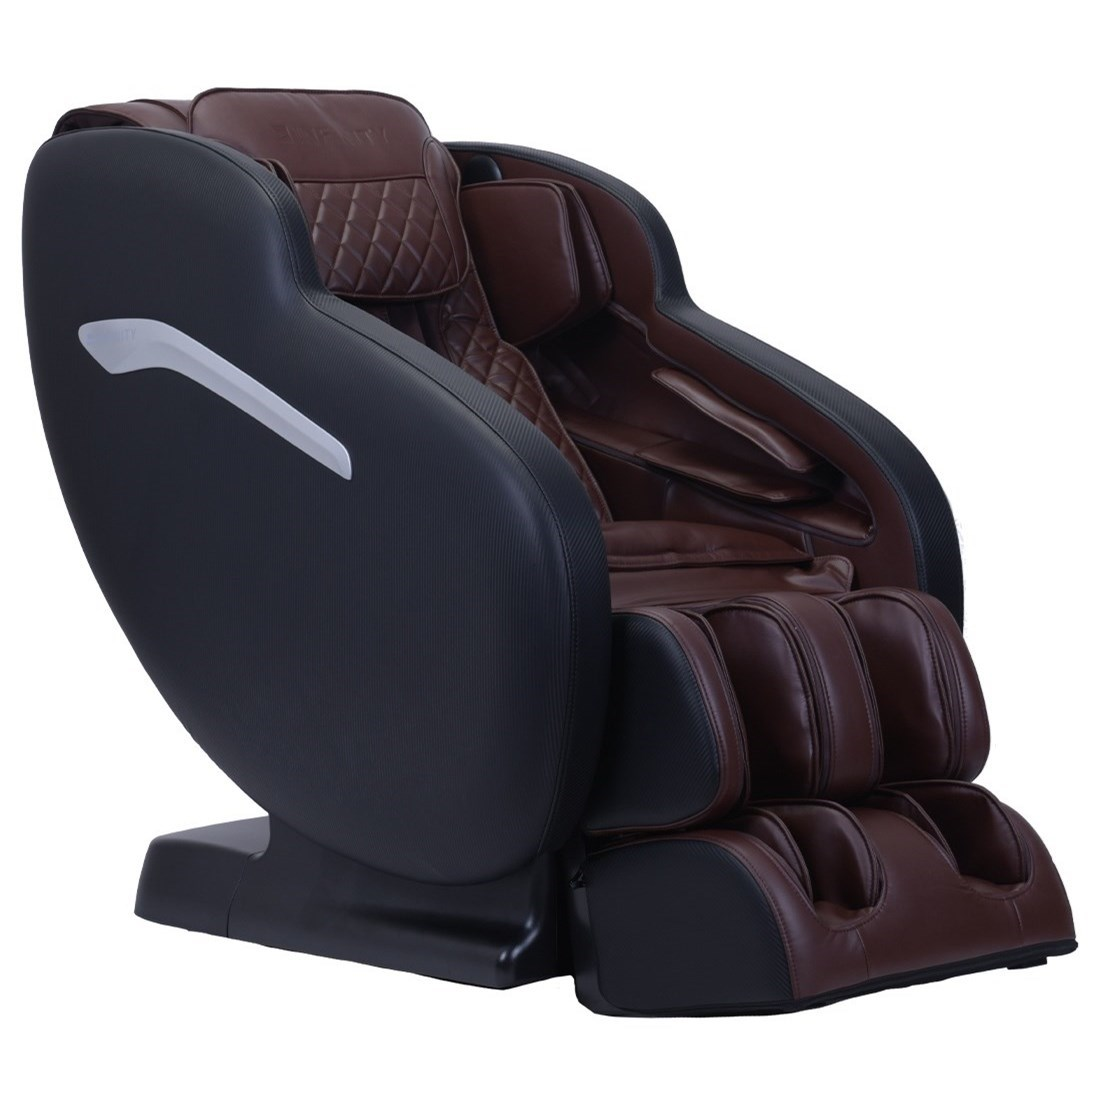 Aura Power Reclining Chair with Massage and Heat by Infinity at Rife's Home Furniture